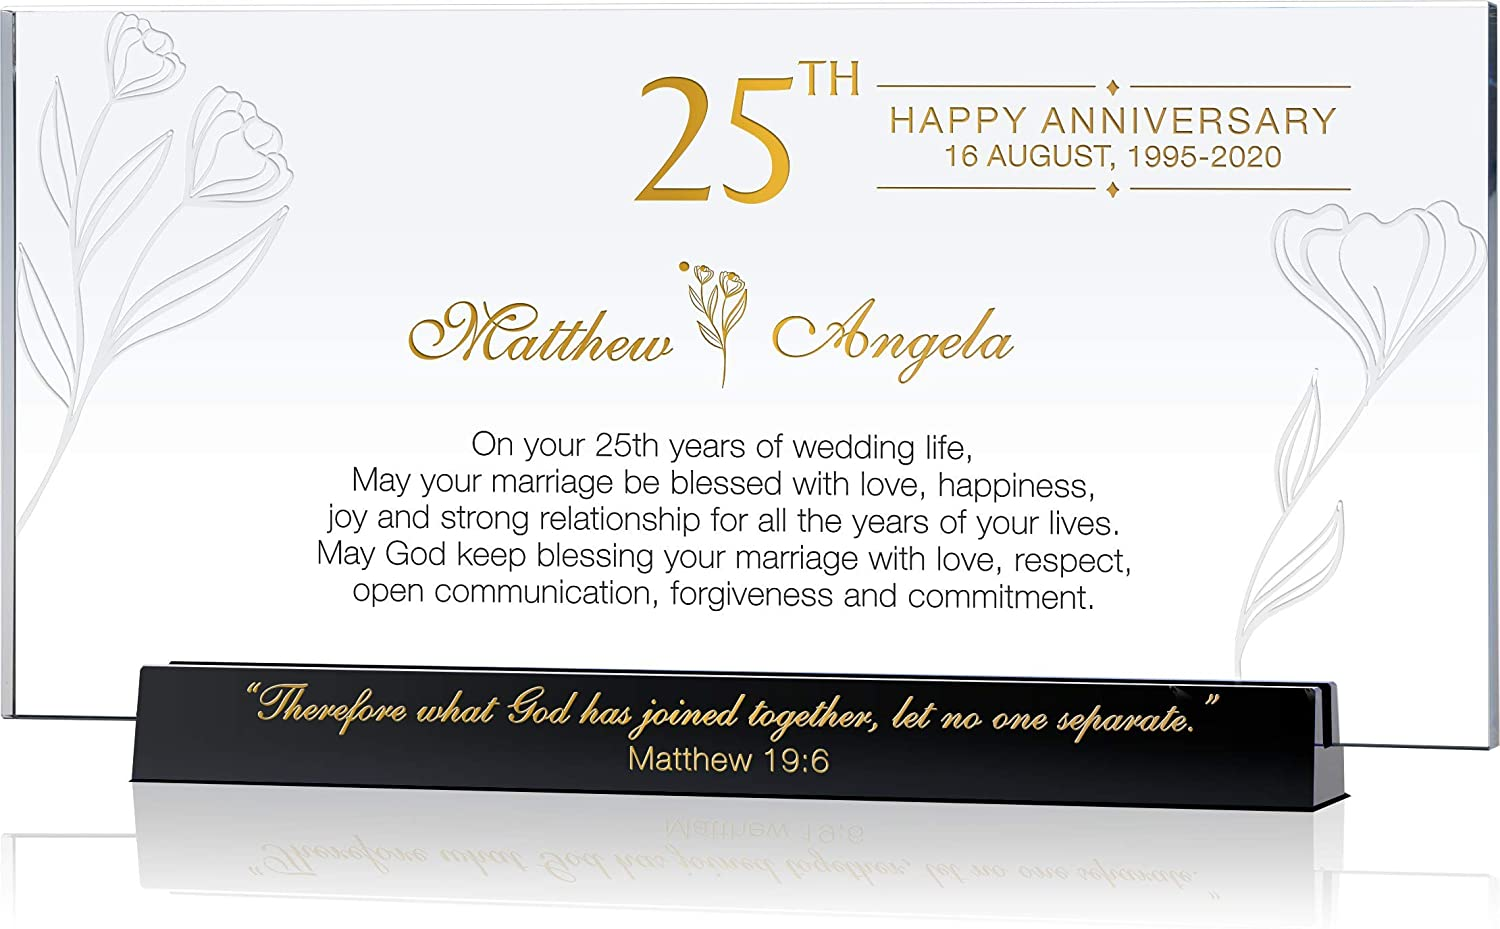 Personalized Religious Gift for 25th Wedding Anniversary for Parents, for Couple, Customized with Name & Date, Unique Gift from Children or Best Friend for Silver Wedding Anniversary (M - 8.5